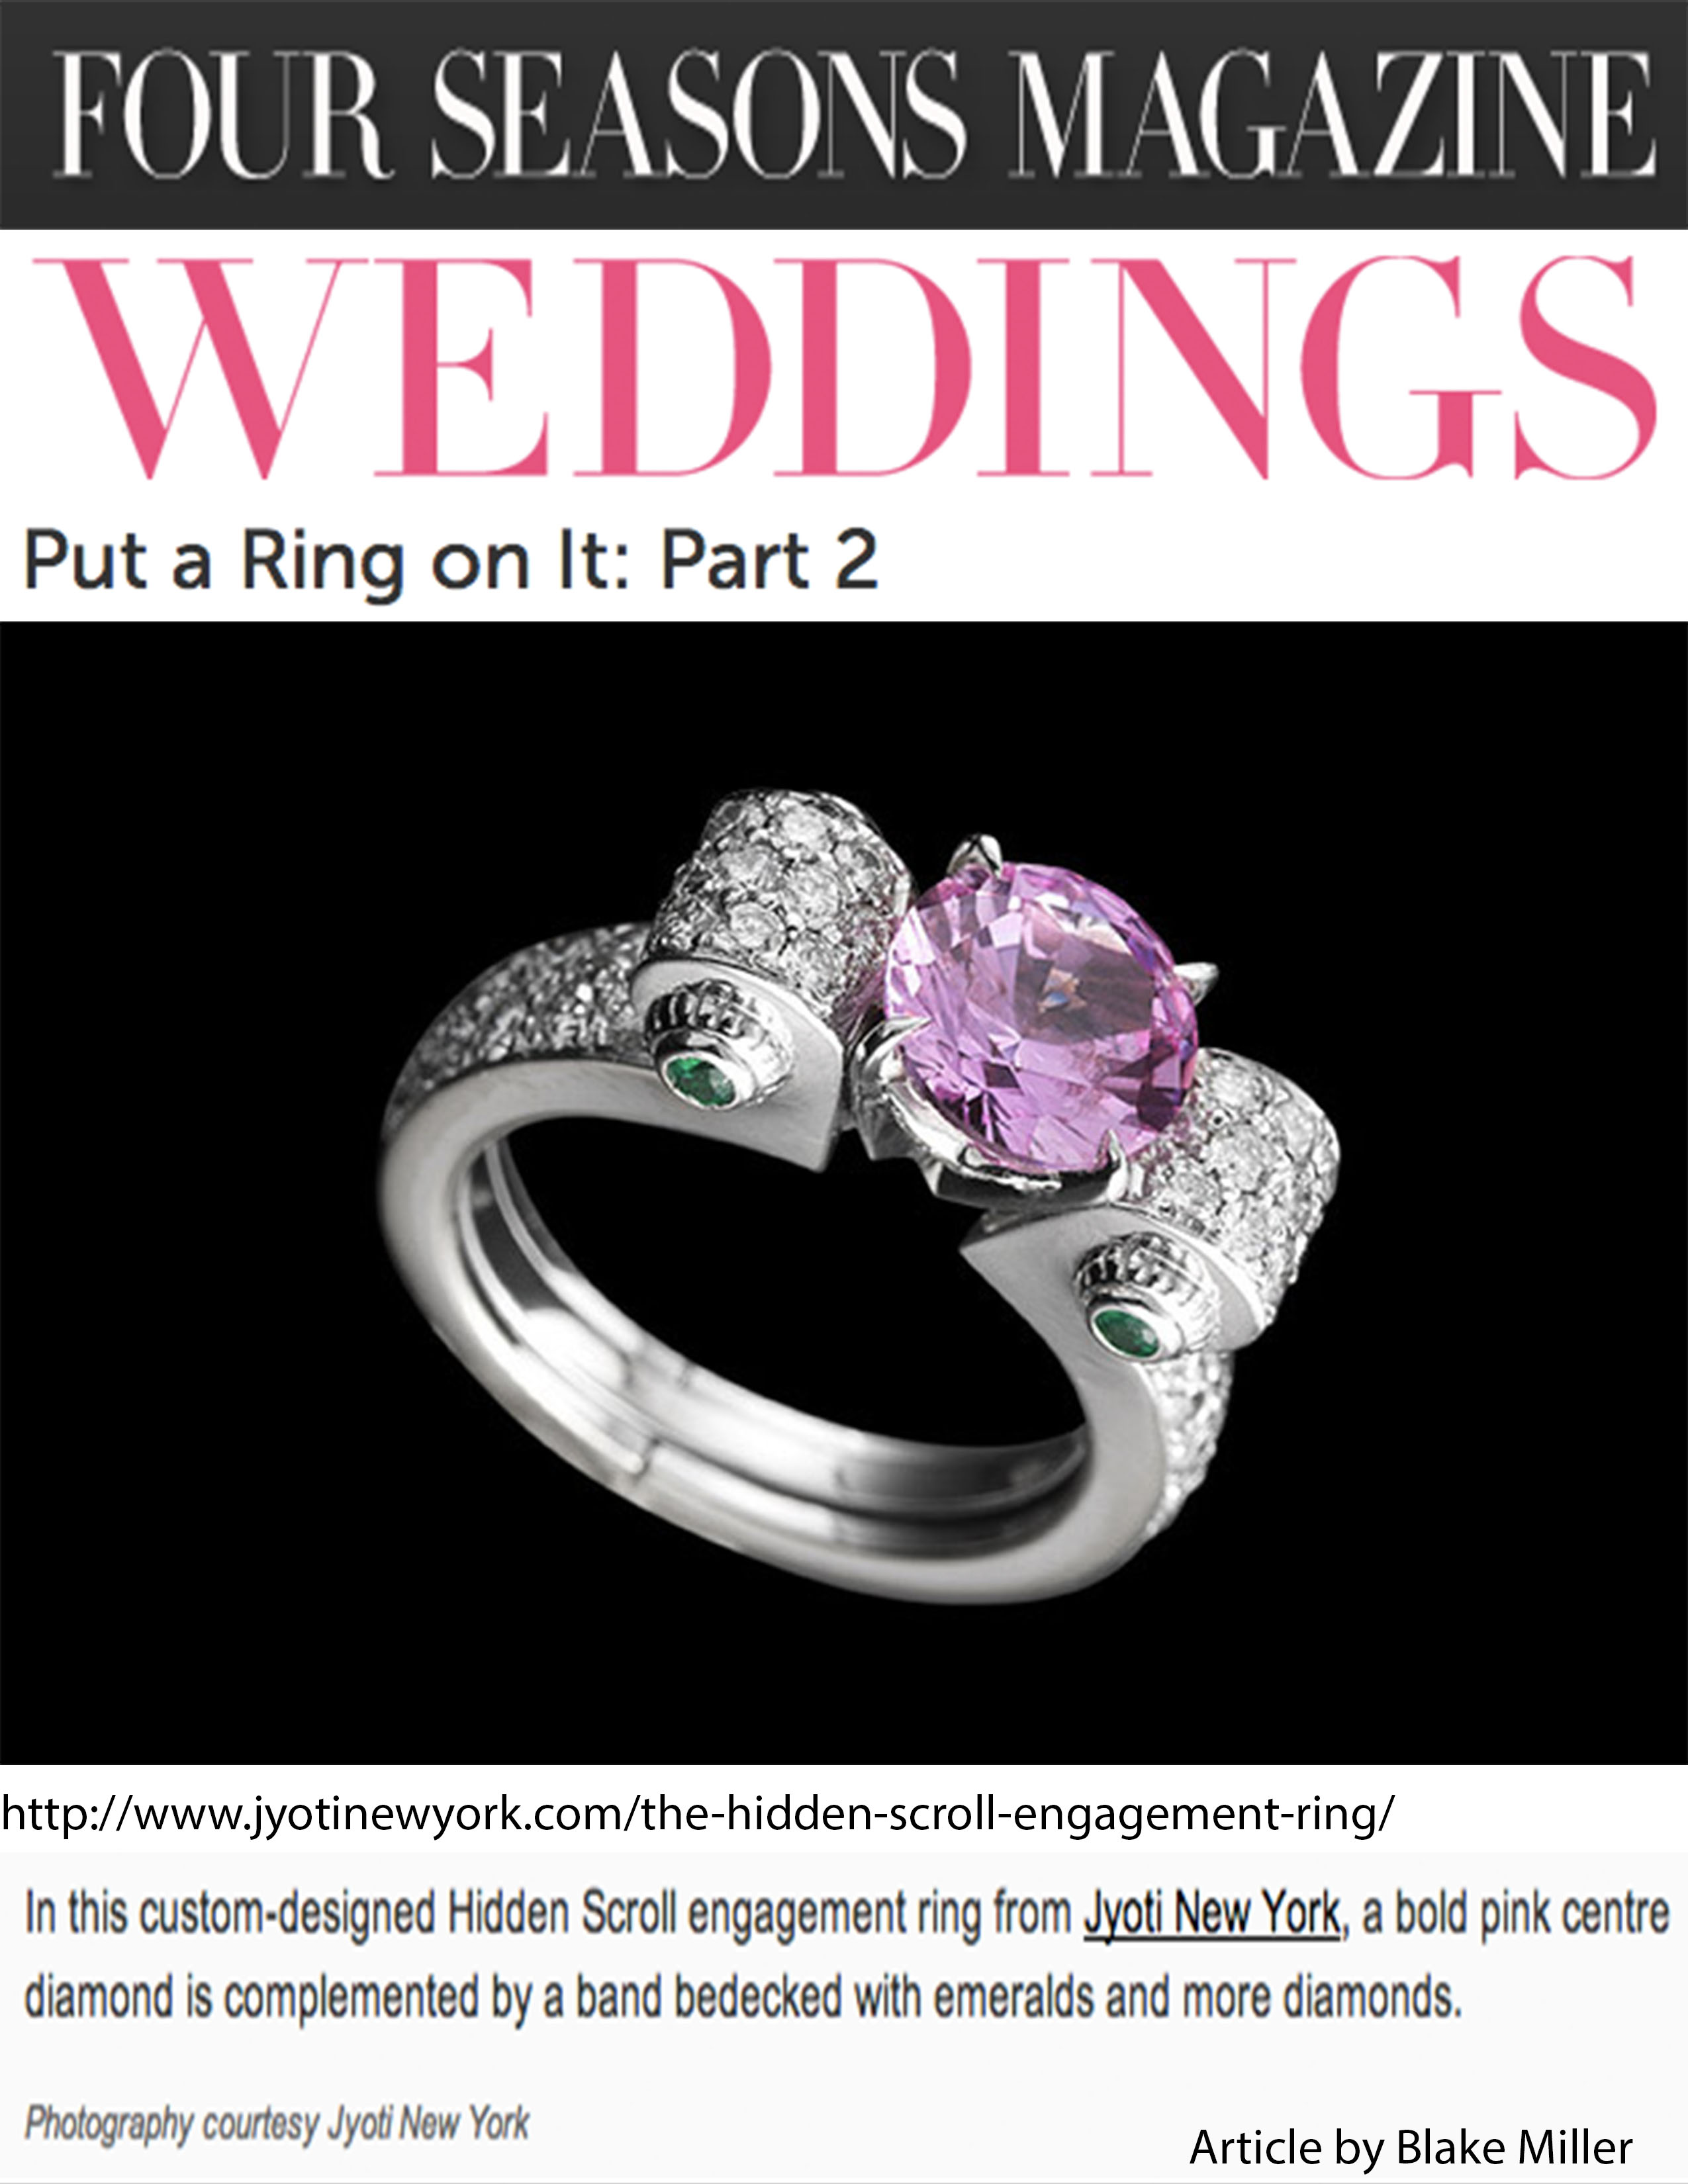 Four Seasons WEDDINGS Magazine Features our Bespoke Pink Diamond Engagement Ring as coveted!